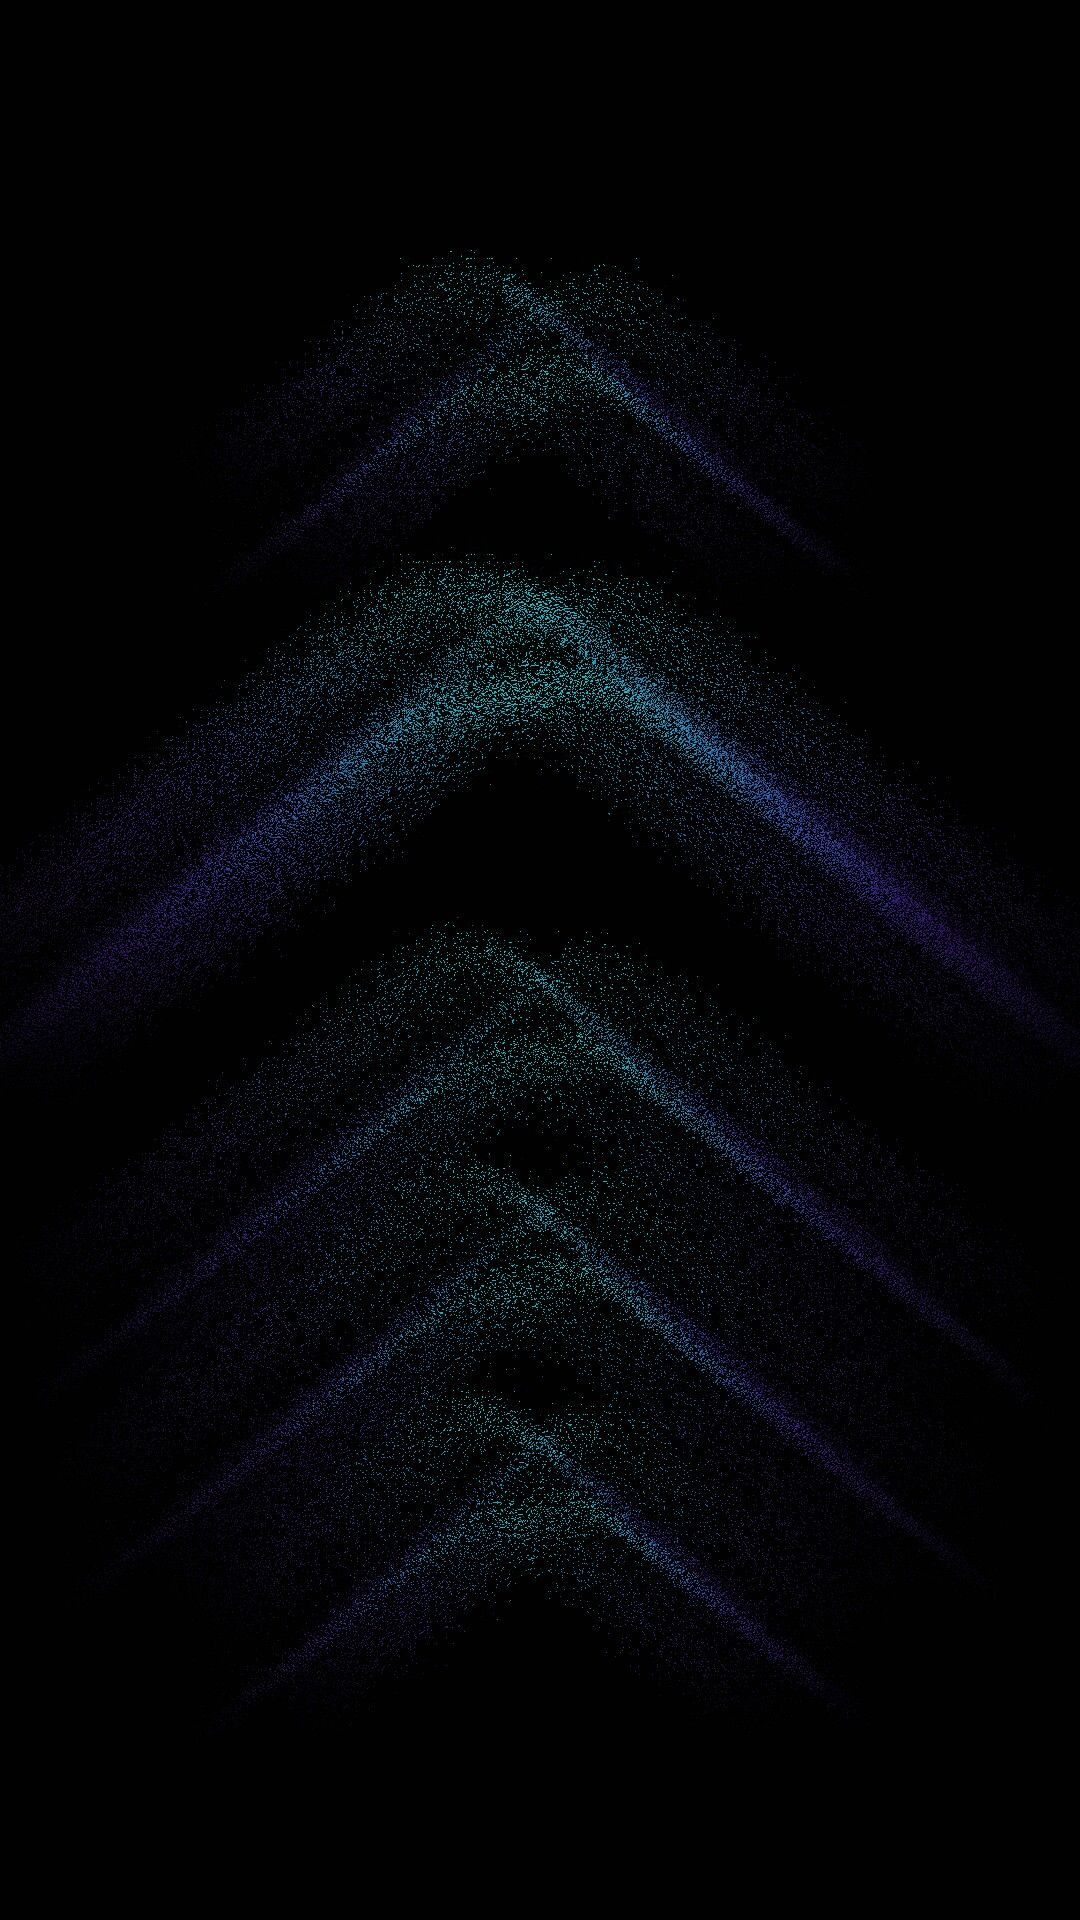 Dark Iphone Wallpaper Check More At Https Wallpapers Party 9733 Black And Blue Wallpaper Teal Wallpaper Hd Iphone Wallpaper